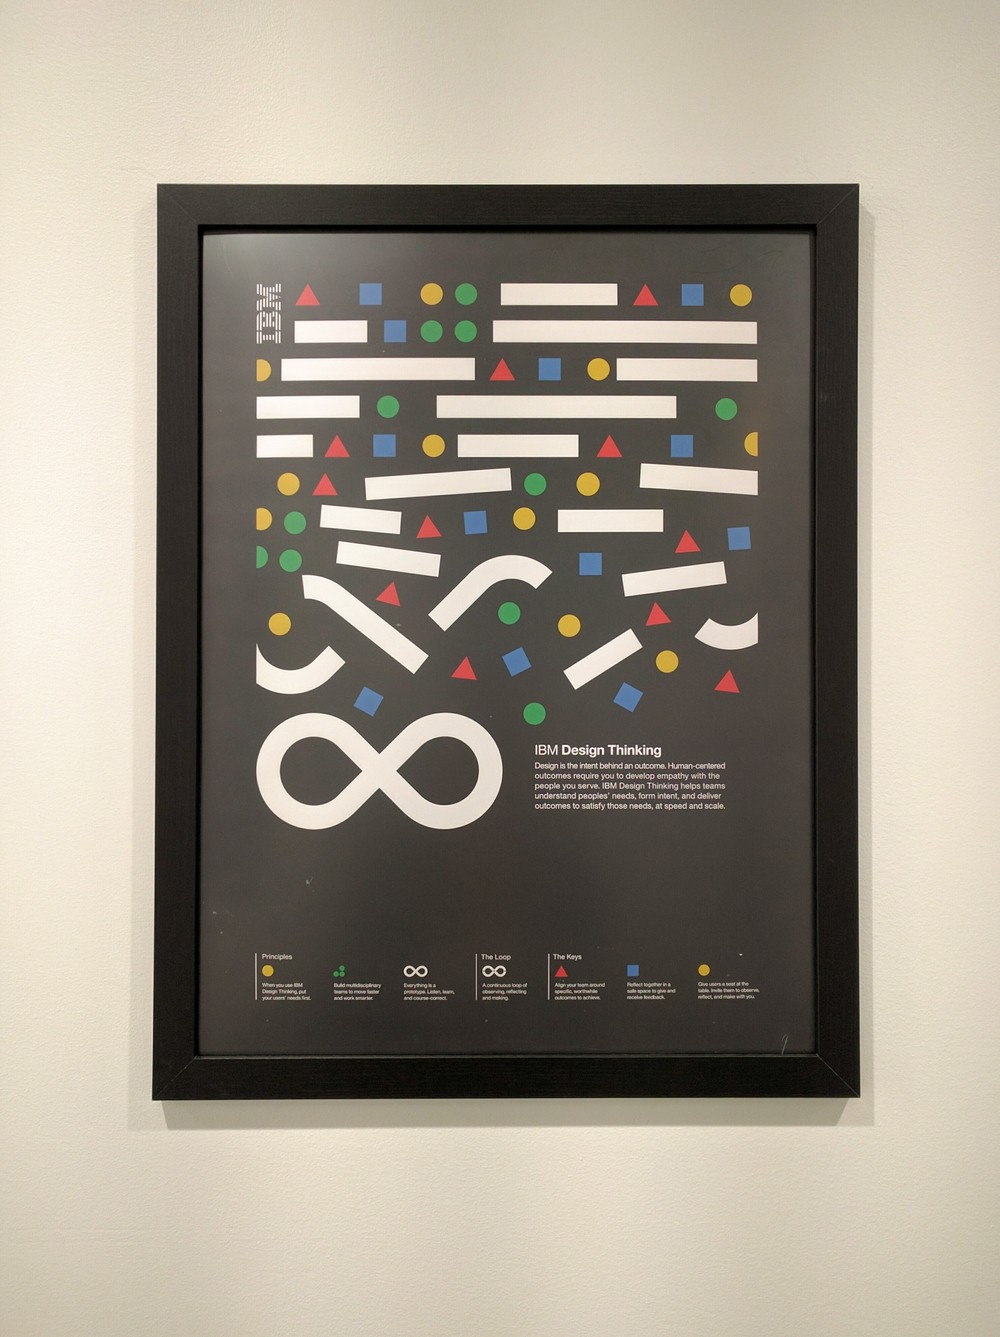 IBM Design poster - Framing & mounting